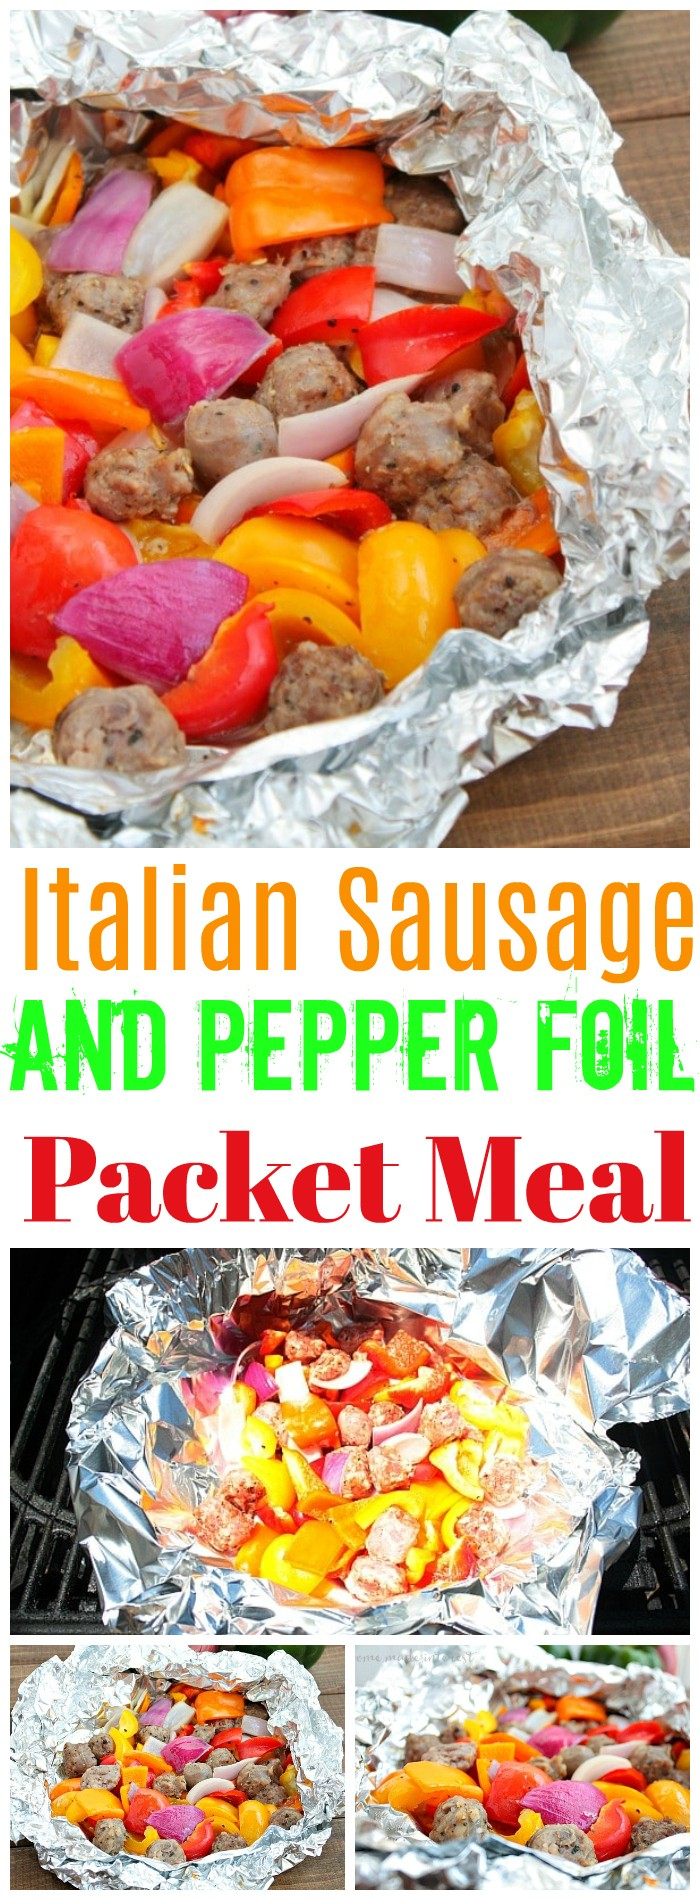 Italian Sausage And Pepper Foil Packet Meal